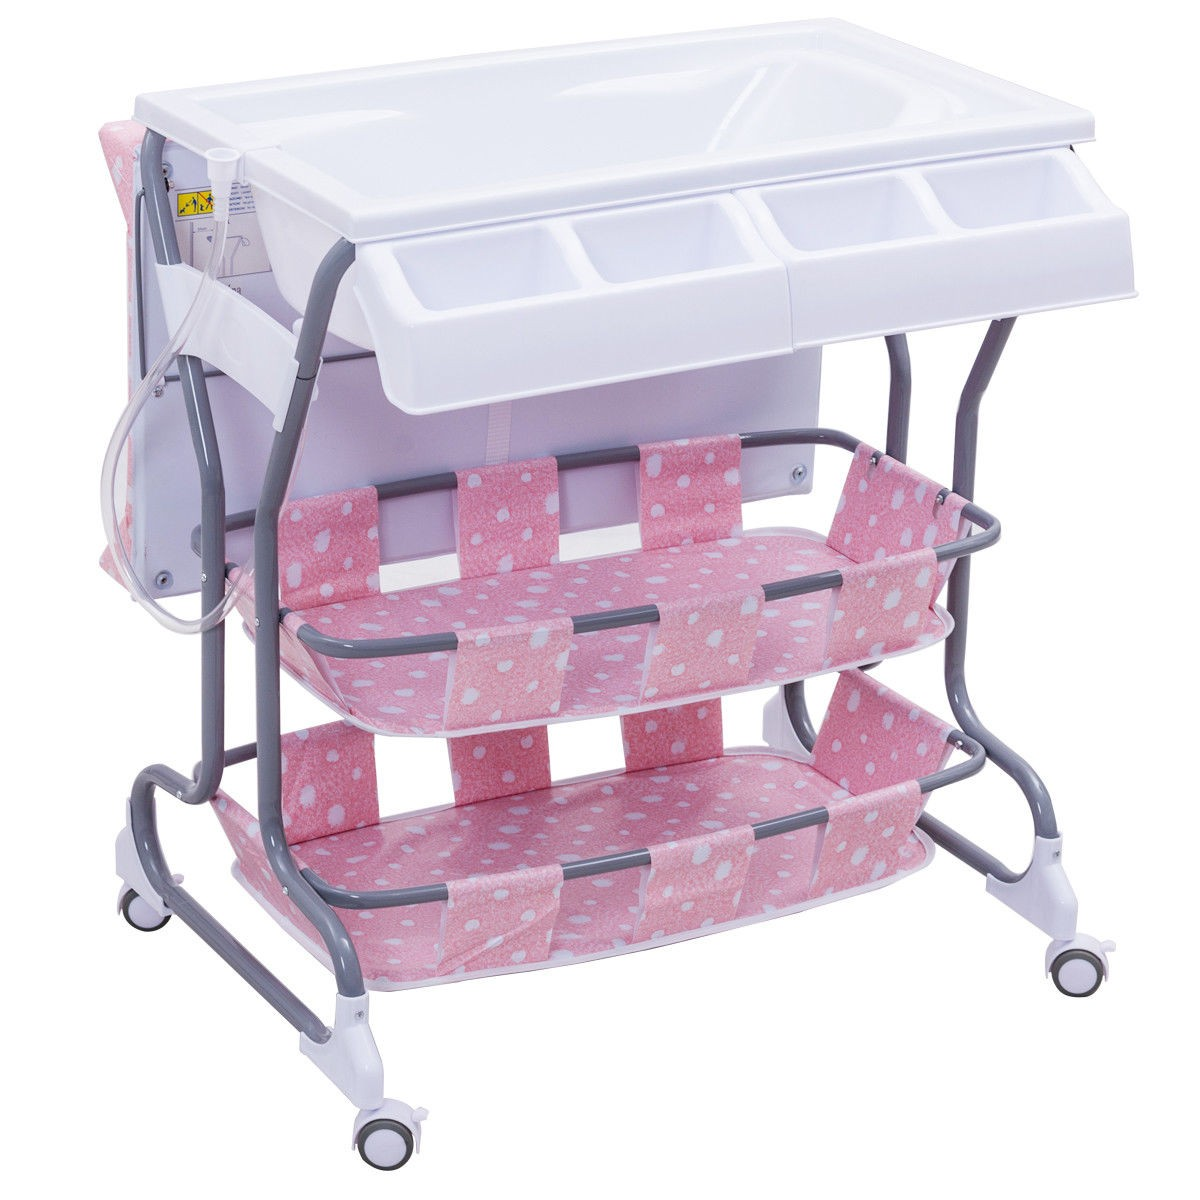 Infant Baby Bath Nursery Storage Changing Table – By Choice Products